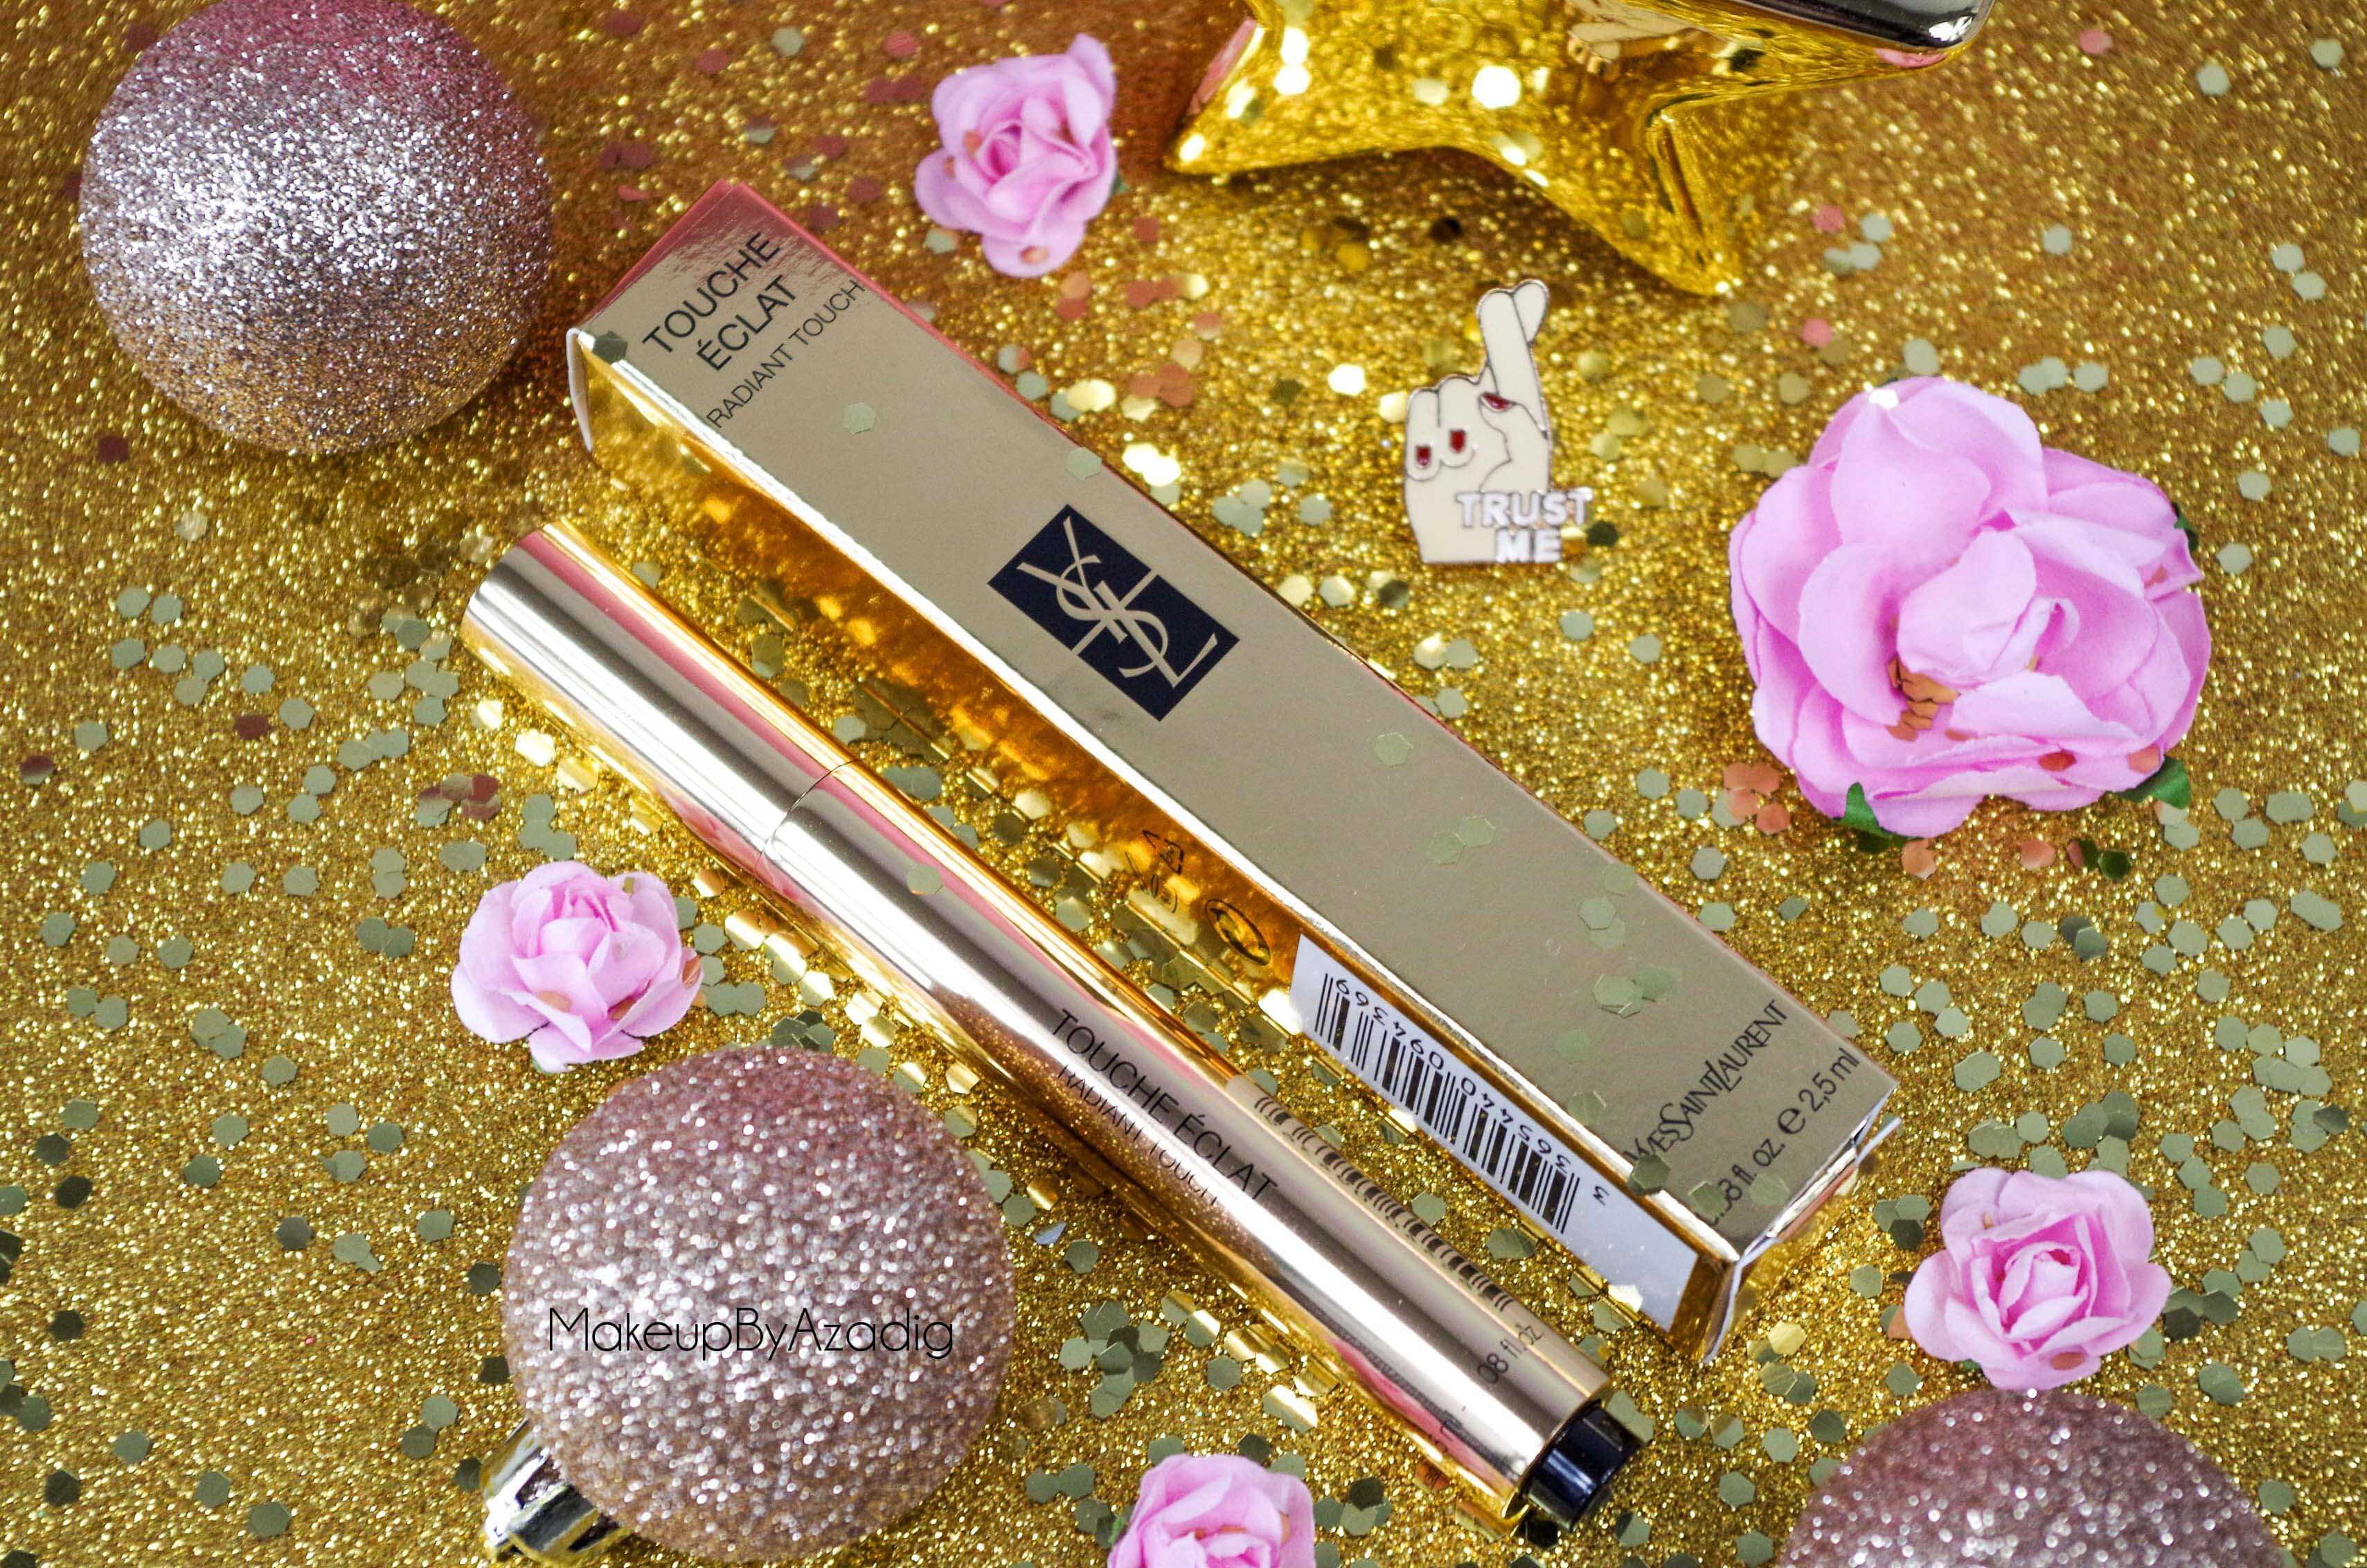 miniature-stylo-touche-eclat-radiant-touch-enlumineur-yves-saint-laurent-ysl-revue-review-avis-prix-lucette-makeupbyazadig-nouvelle-collection